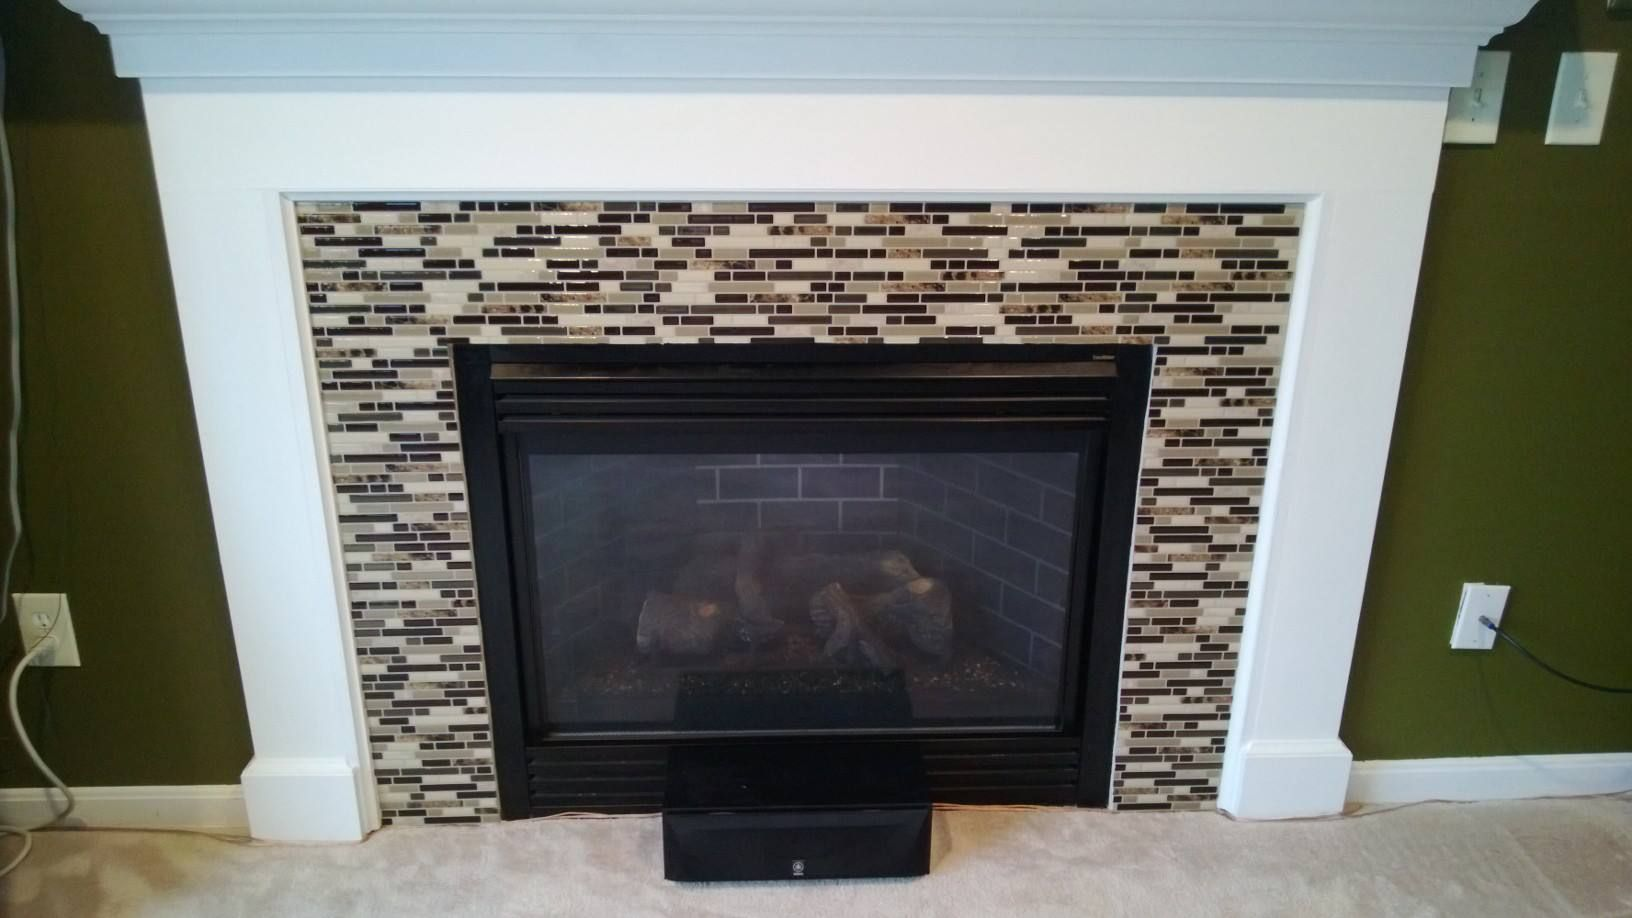 Peel and stick backsplash fireplace peel n stick tiles peel and stick backsplash fireplace peel n stick tiles pinterest smart tiles fireplace mantles and mantle dailygadgetfo Image collections